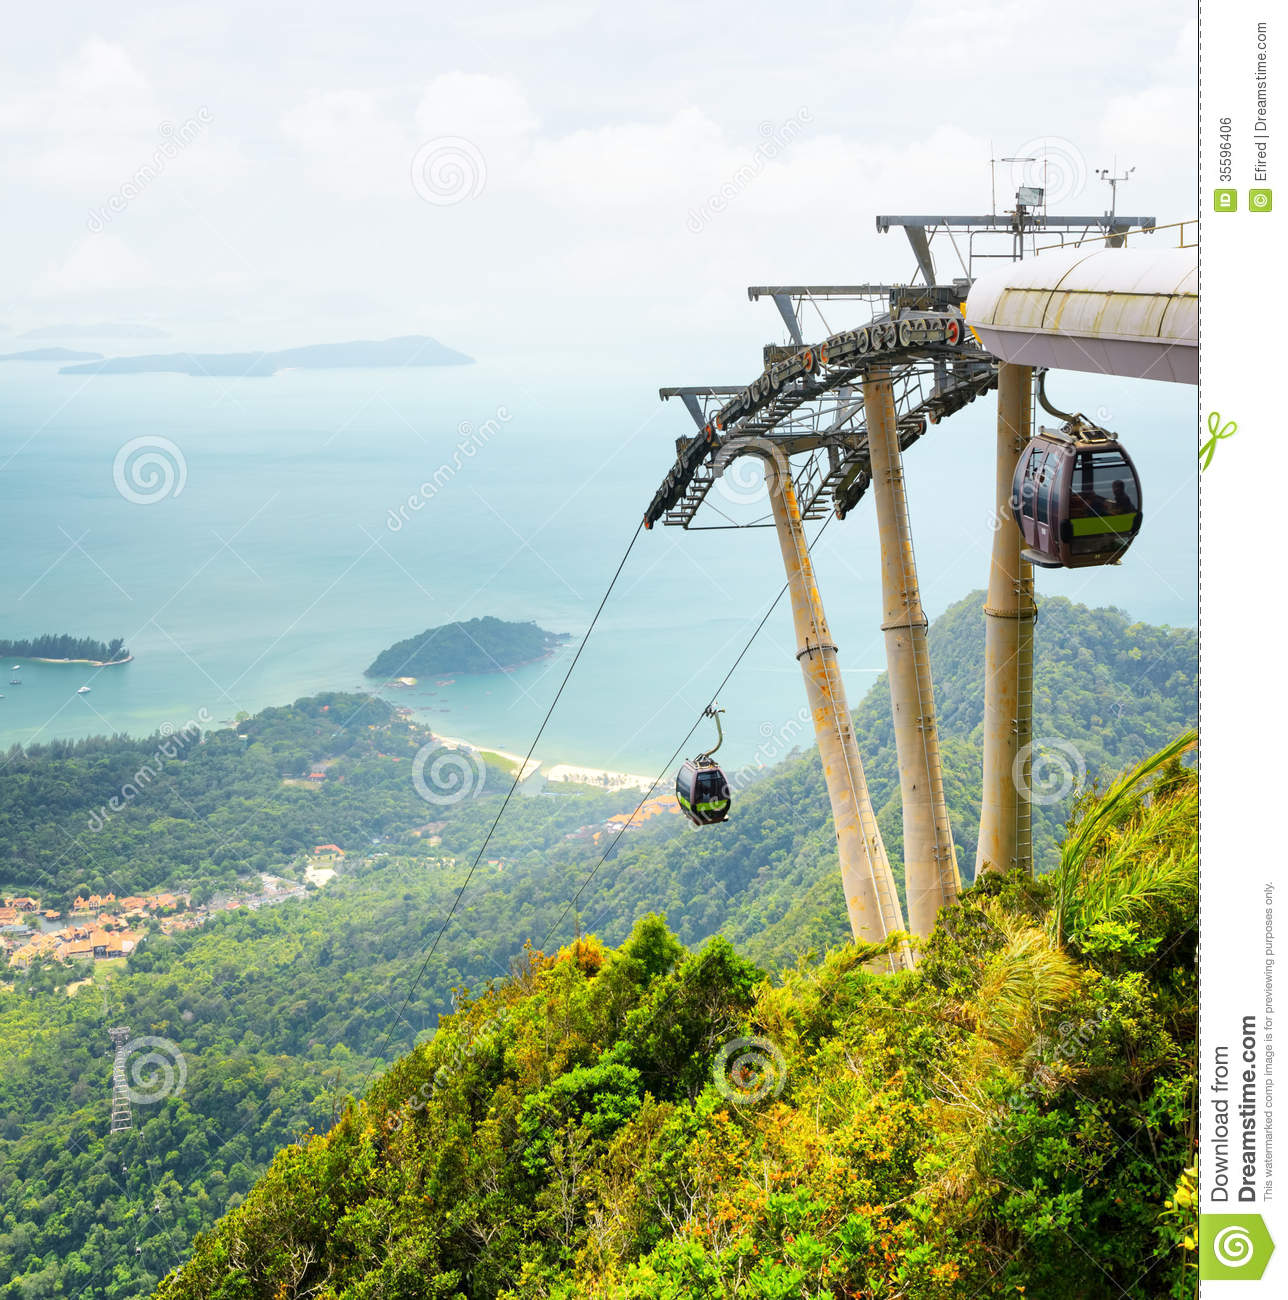 Langkawi Island: Cable Car On Langkawi Island, Malaysia Royalty Free Stock